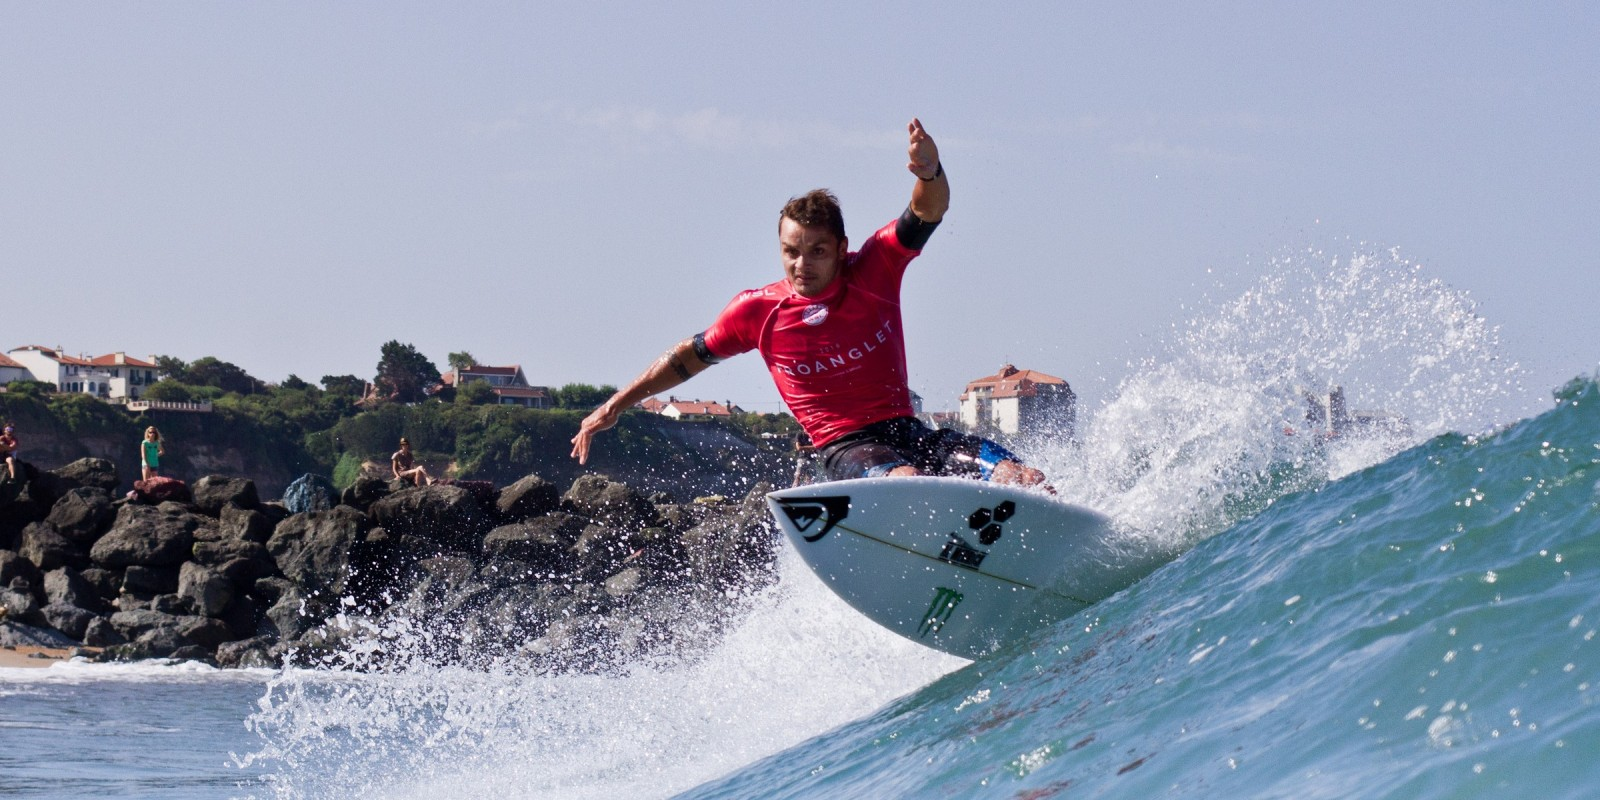 Marc Lacomare at the 2016 Pro Anglet in Anglet, France